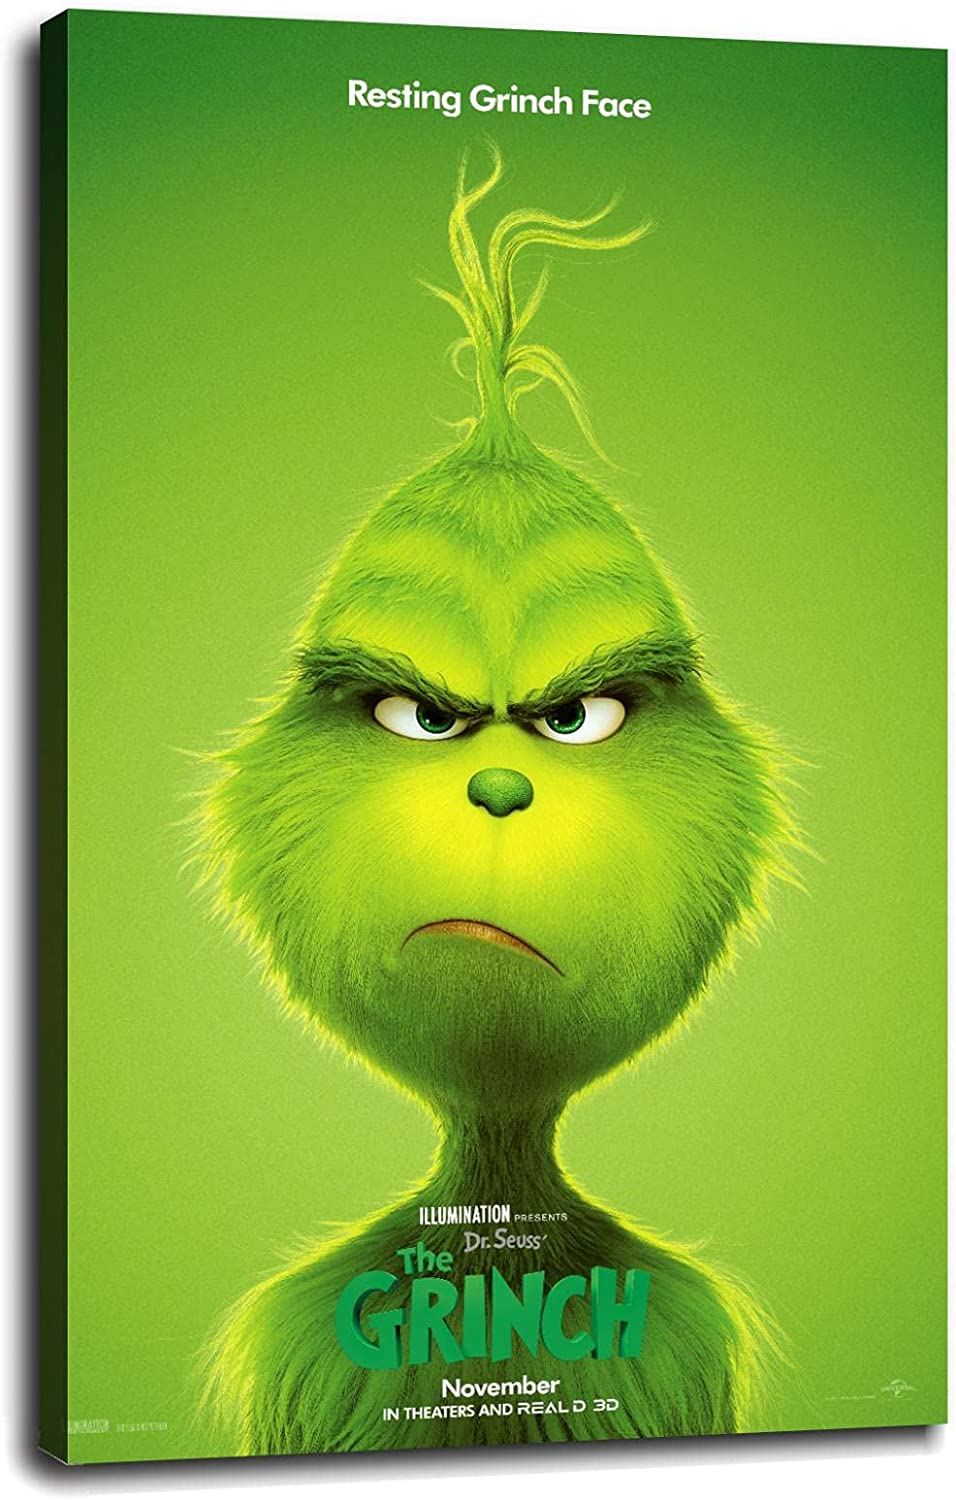 The Grinch Canvas Prints Poster Wall Office Max 78% OFF Branded goods Decorat For Home Art